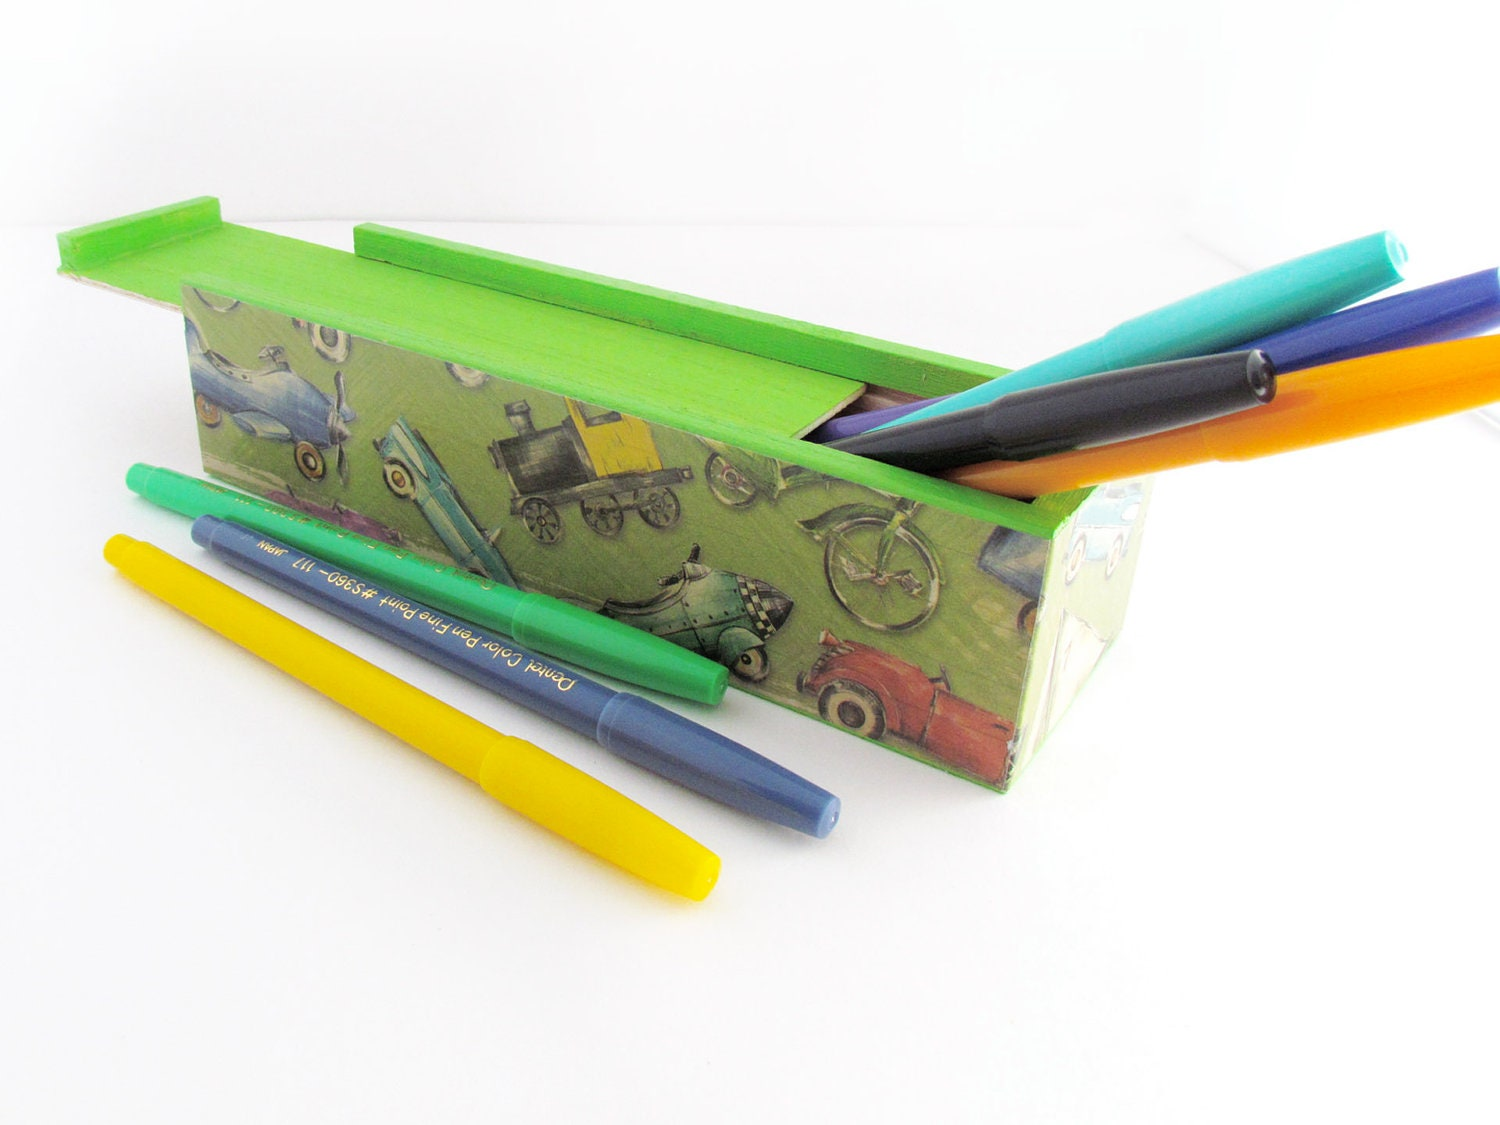 Retro Kiddie Cars Arts & Crafts Pencils Box - Vintage Retro Kiddie Cars Wooden Craft Keepsake Box - WalterSilva